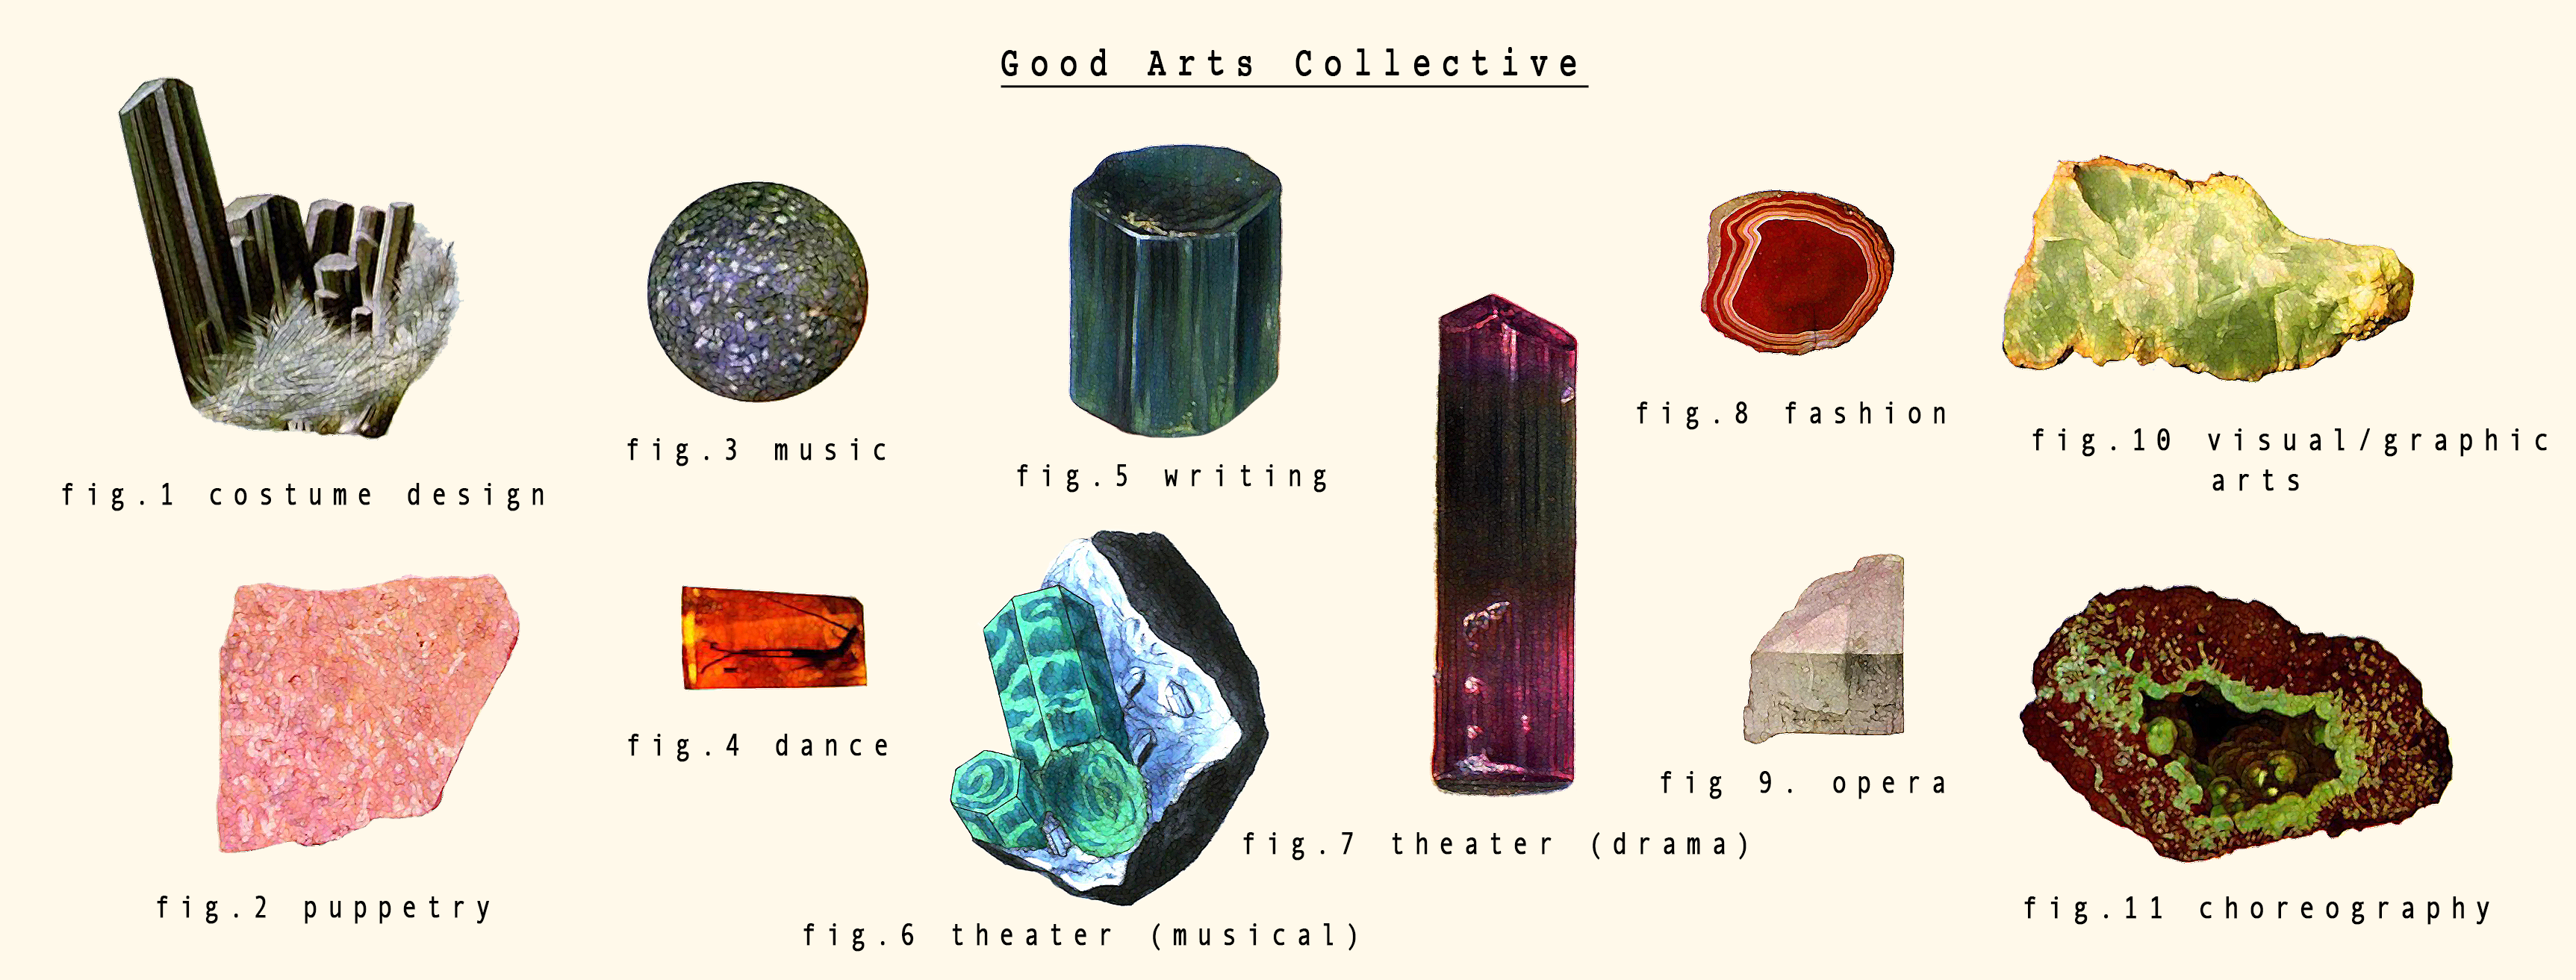 Good Arts Collective Website